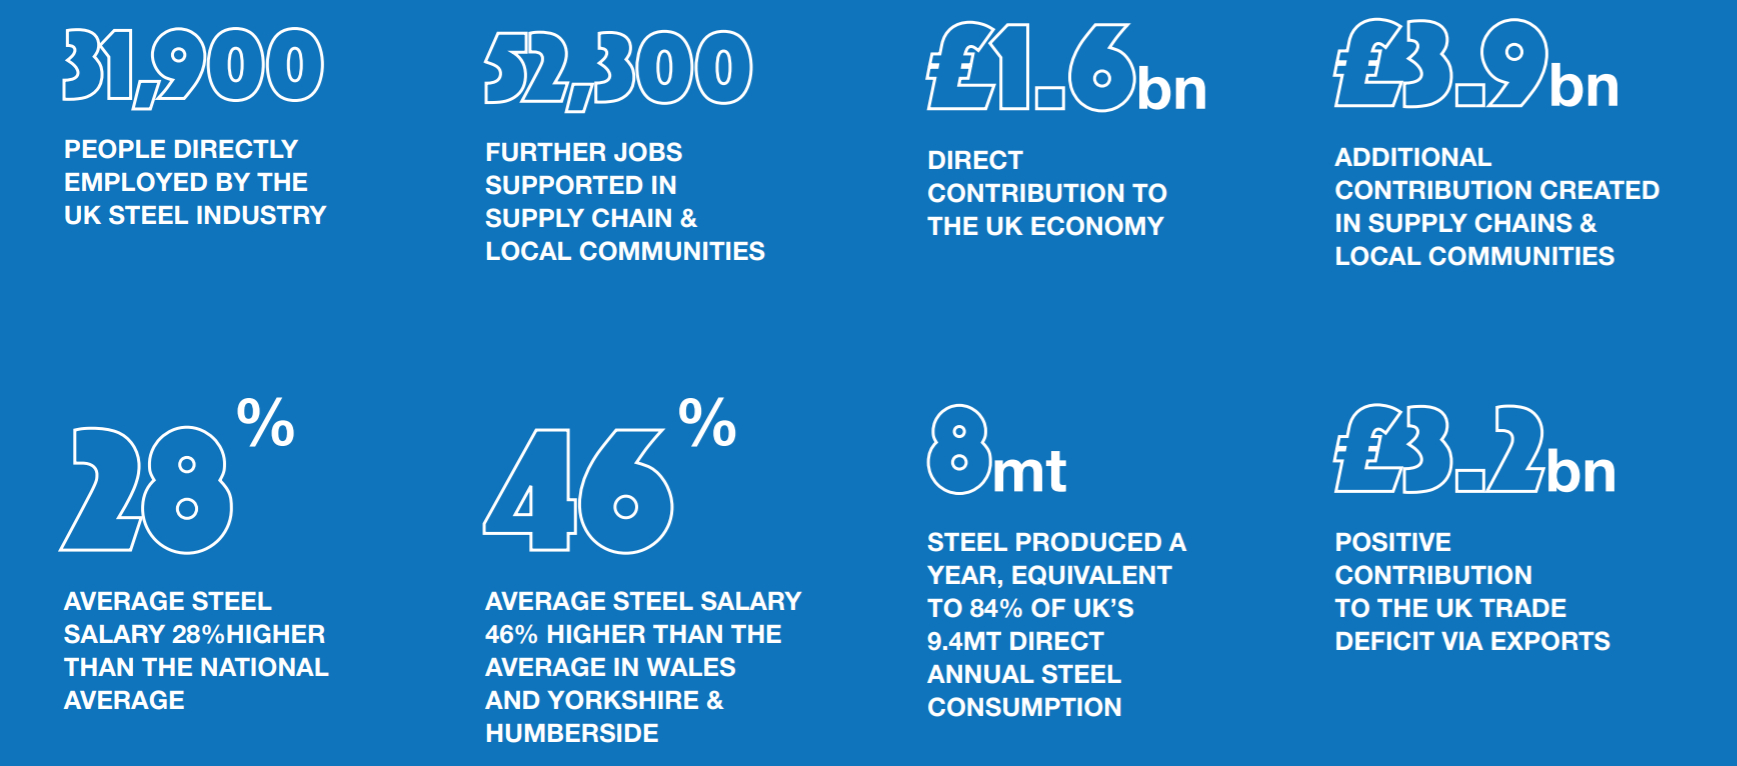 UK Steel in Numbers - Make UK